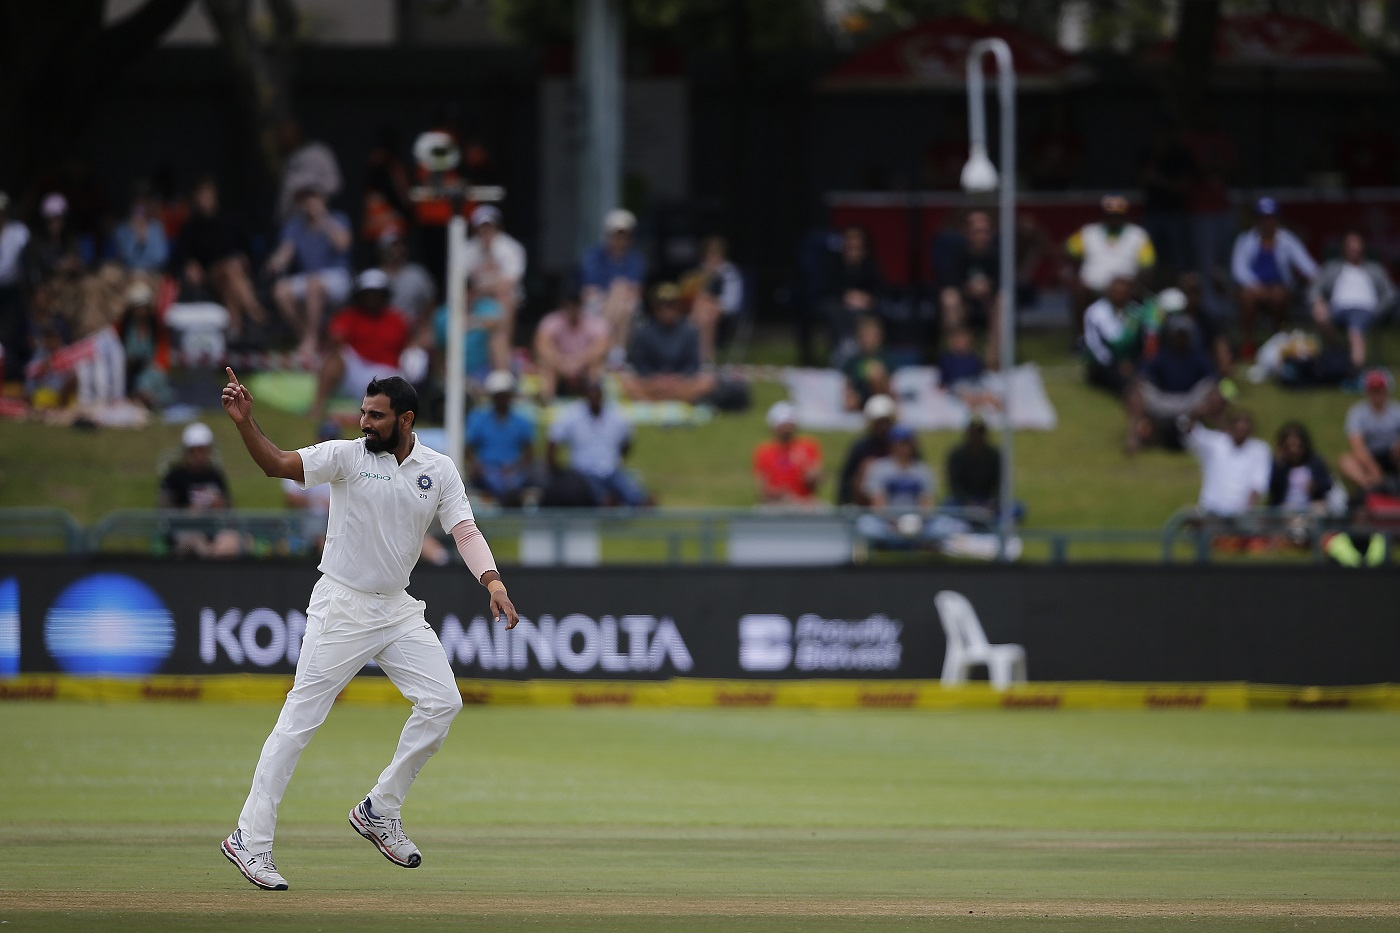 SA vs IND 2018, 2nd Test: We Were Looking to Give Away as Few Runs as Possible - Mohammed Shami